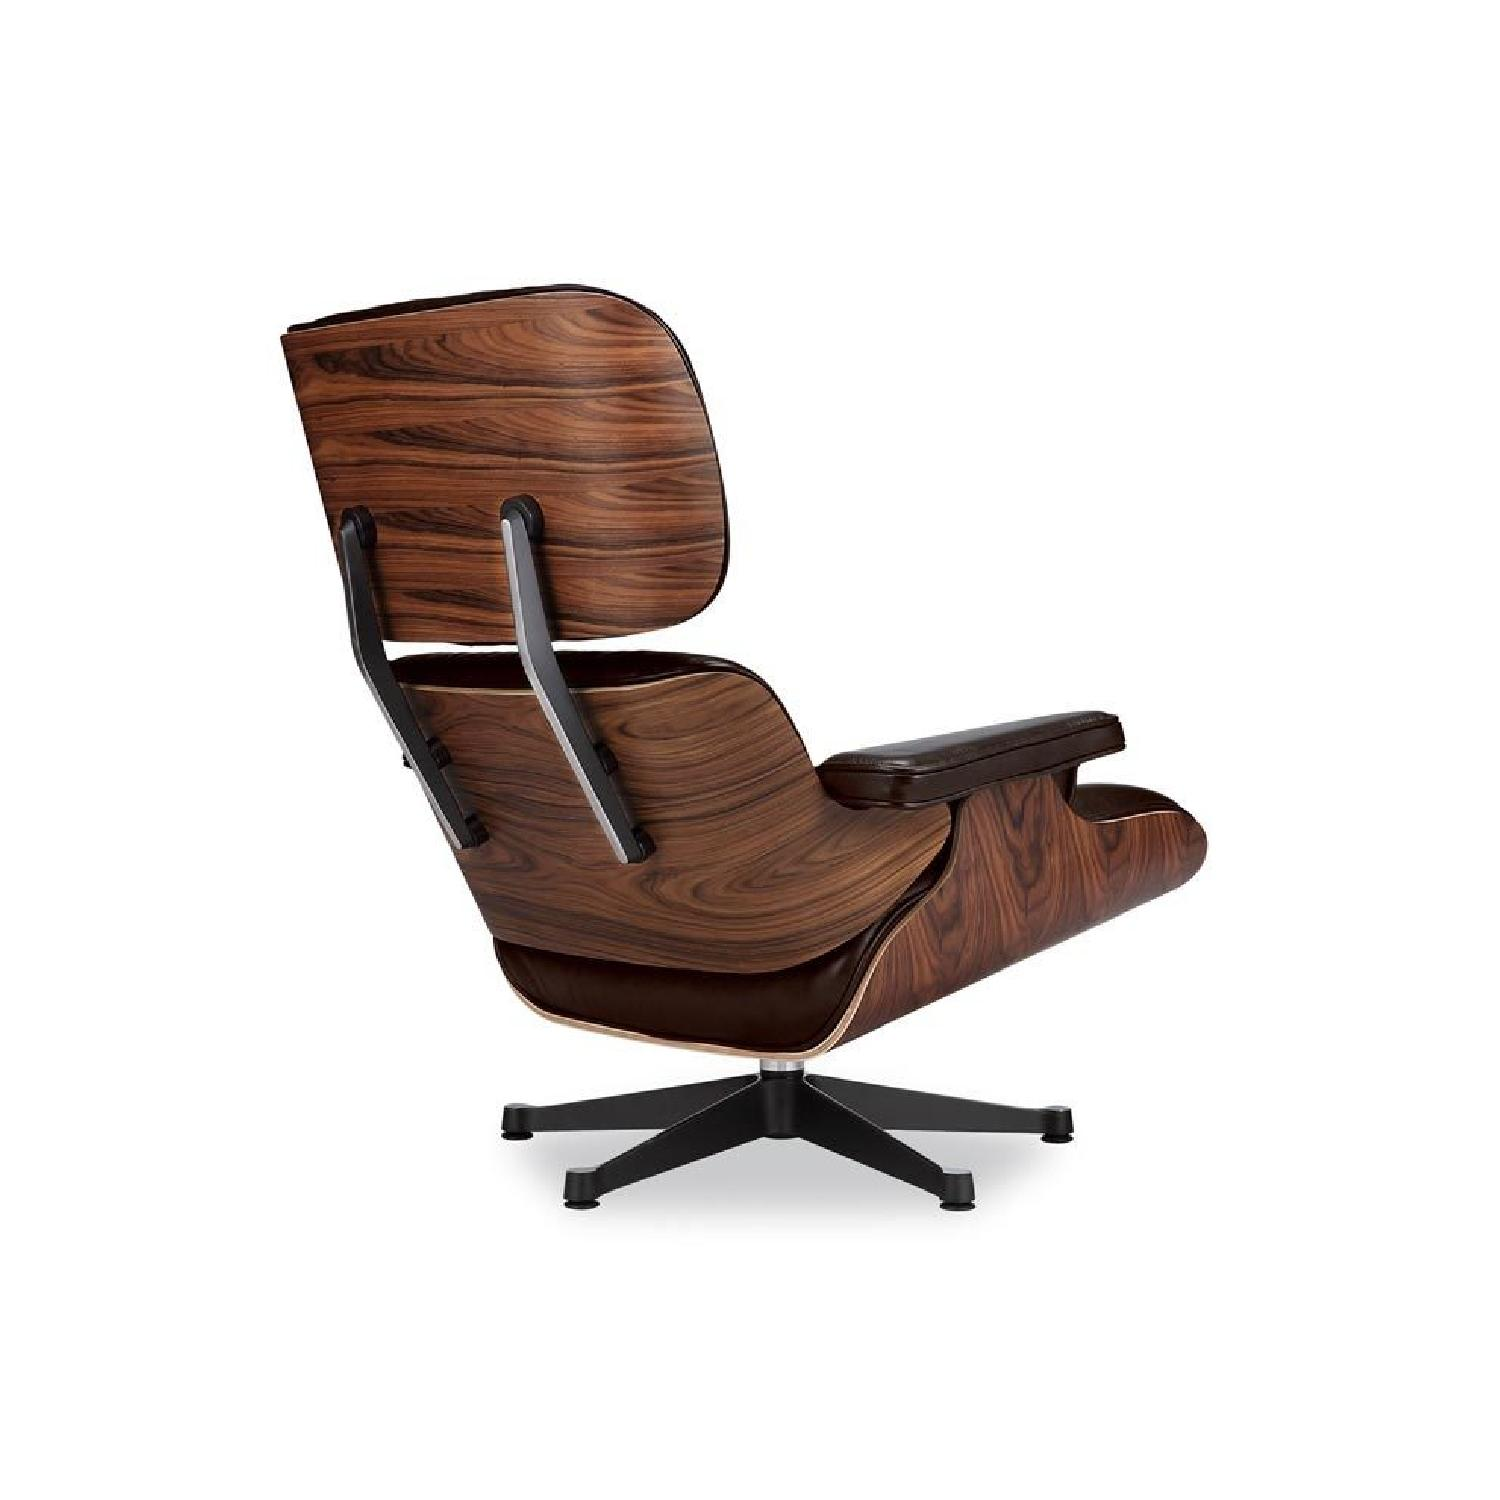 Astounding Eames Lounge Chair Replica In Brown Aptdeco Pabps2019 Chair Design Images Pabps2019Com